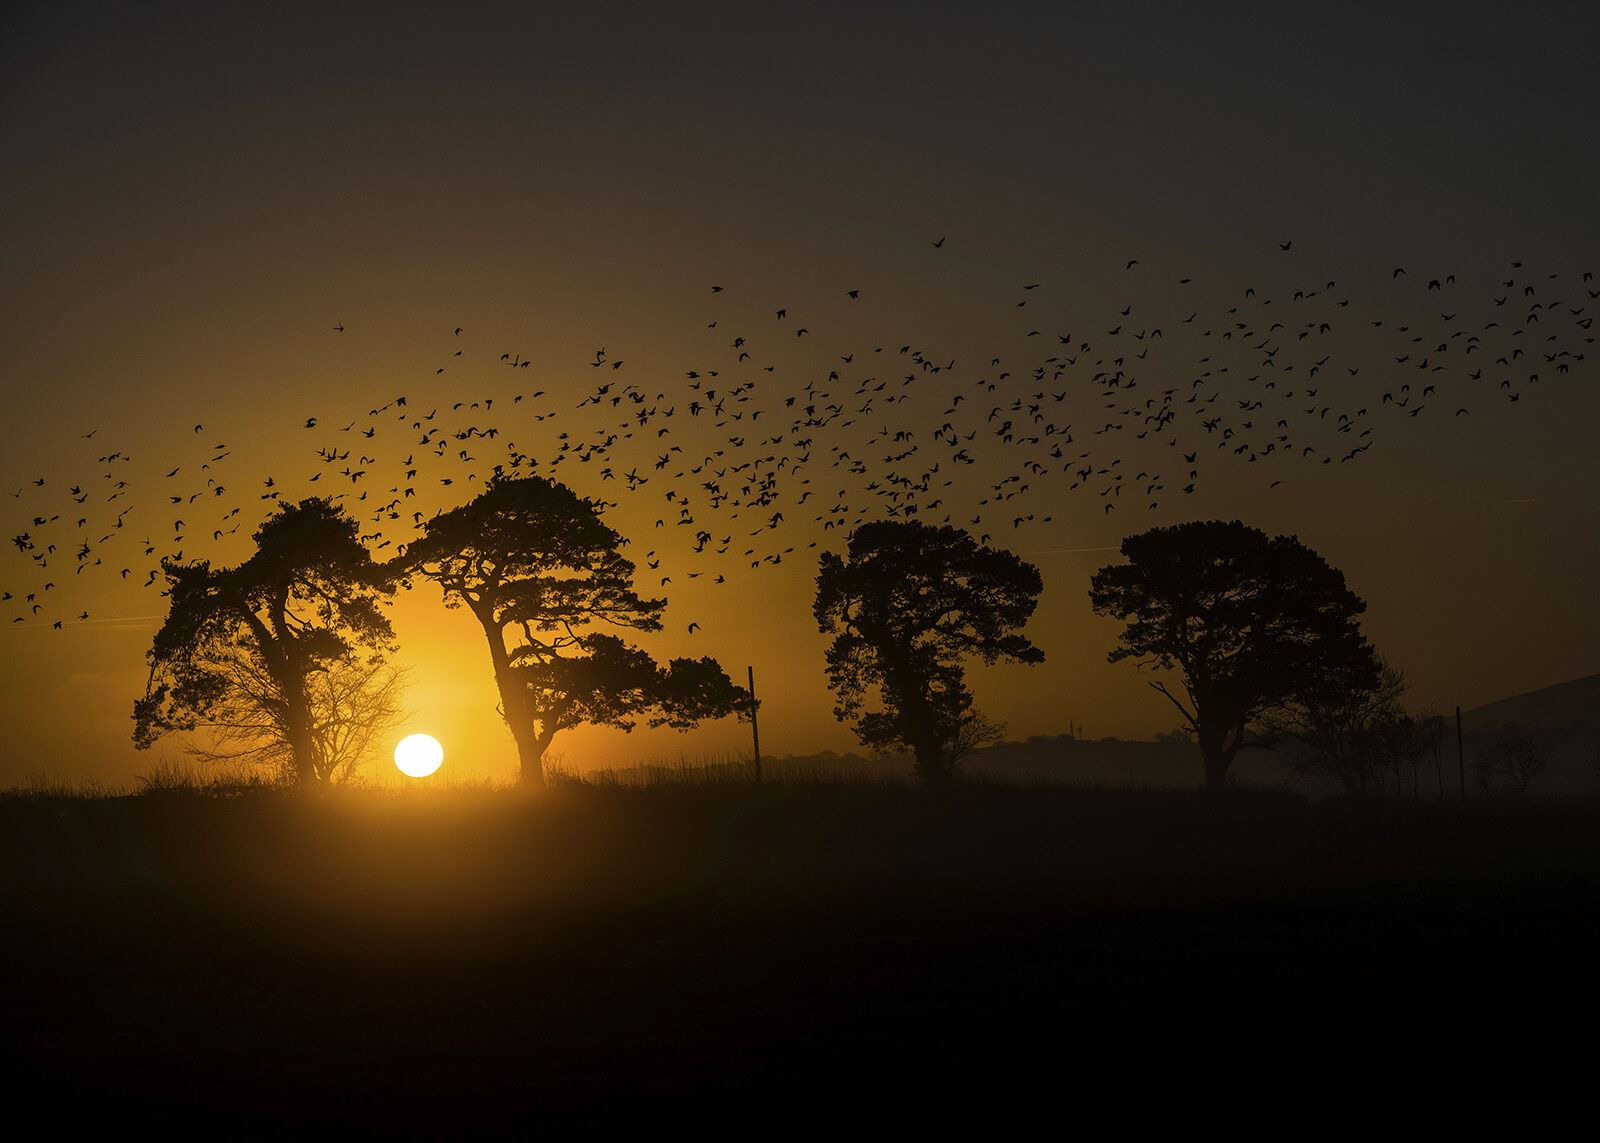 The birds at dawn.